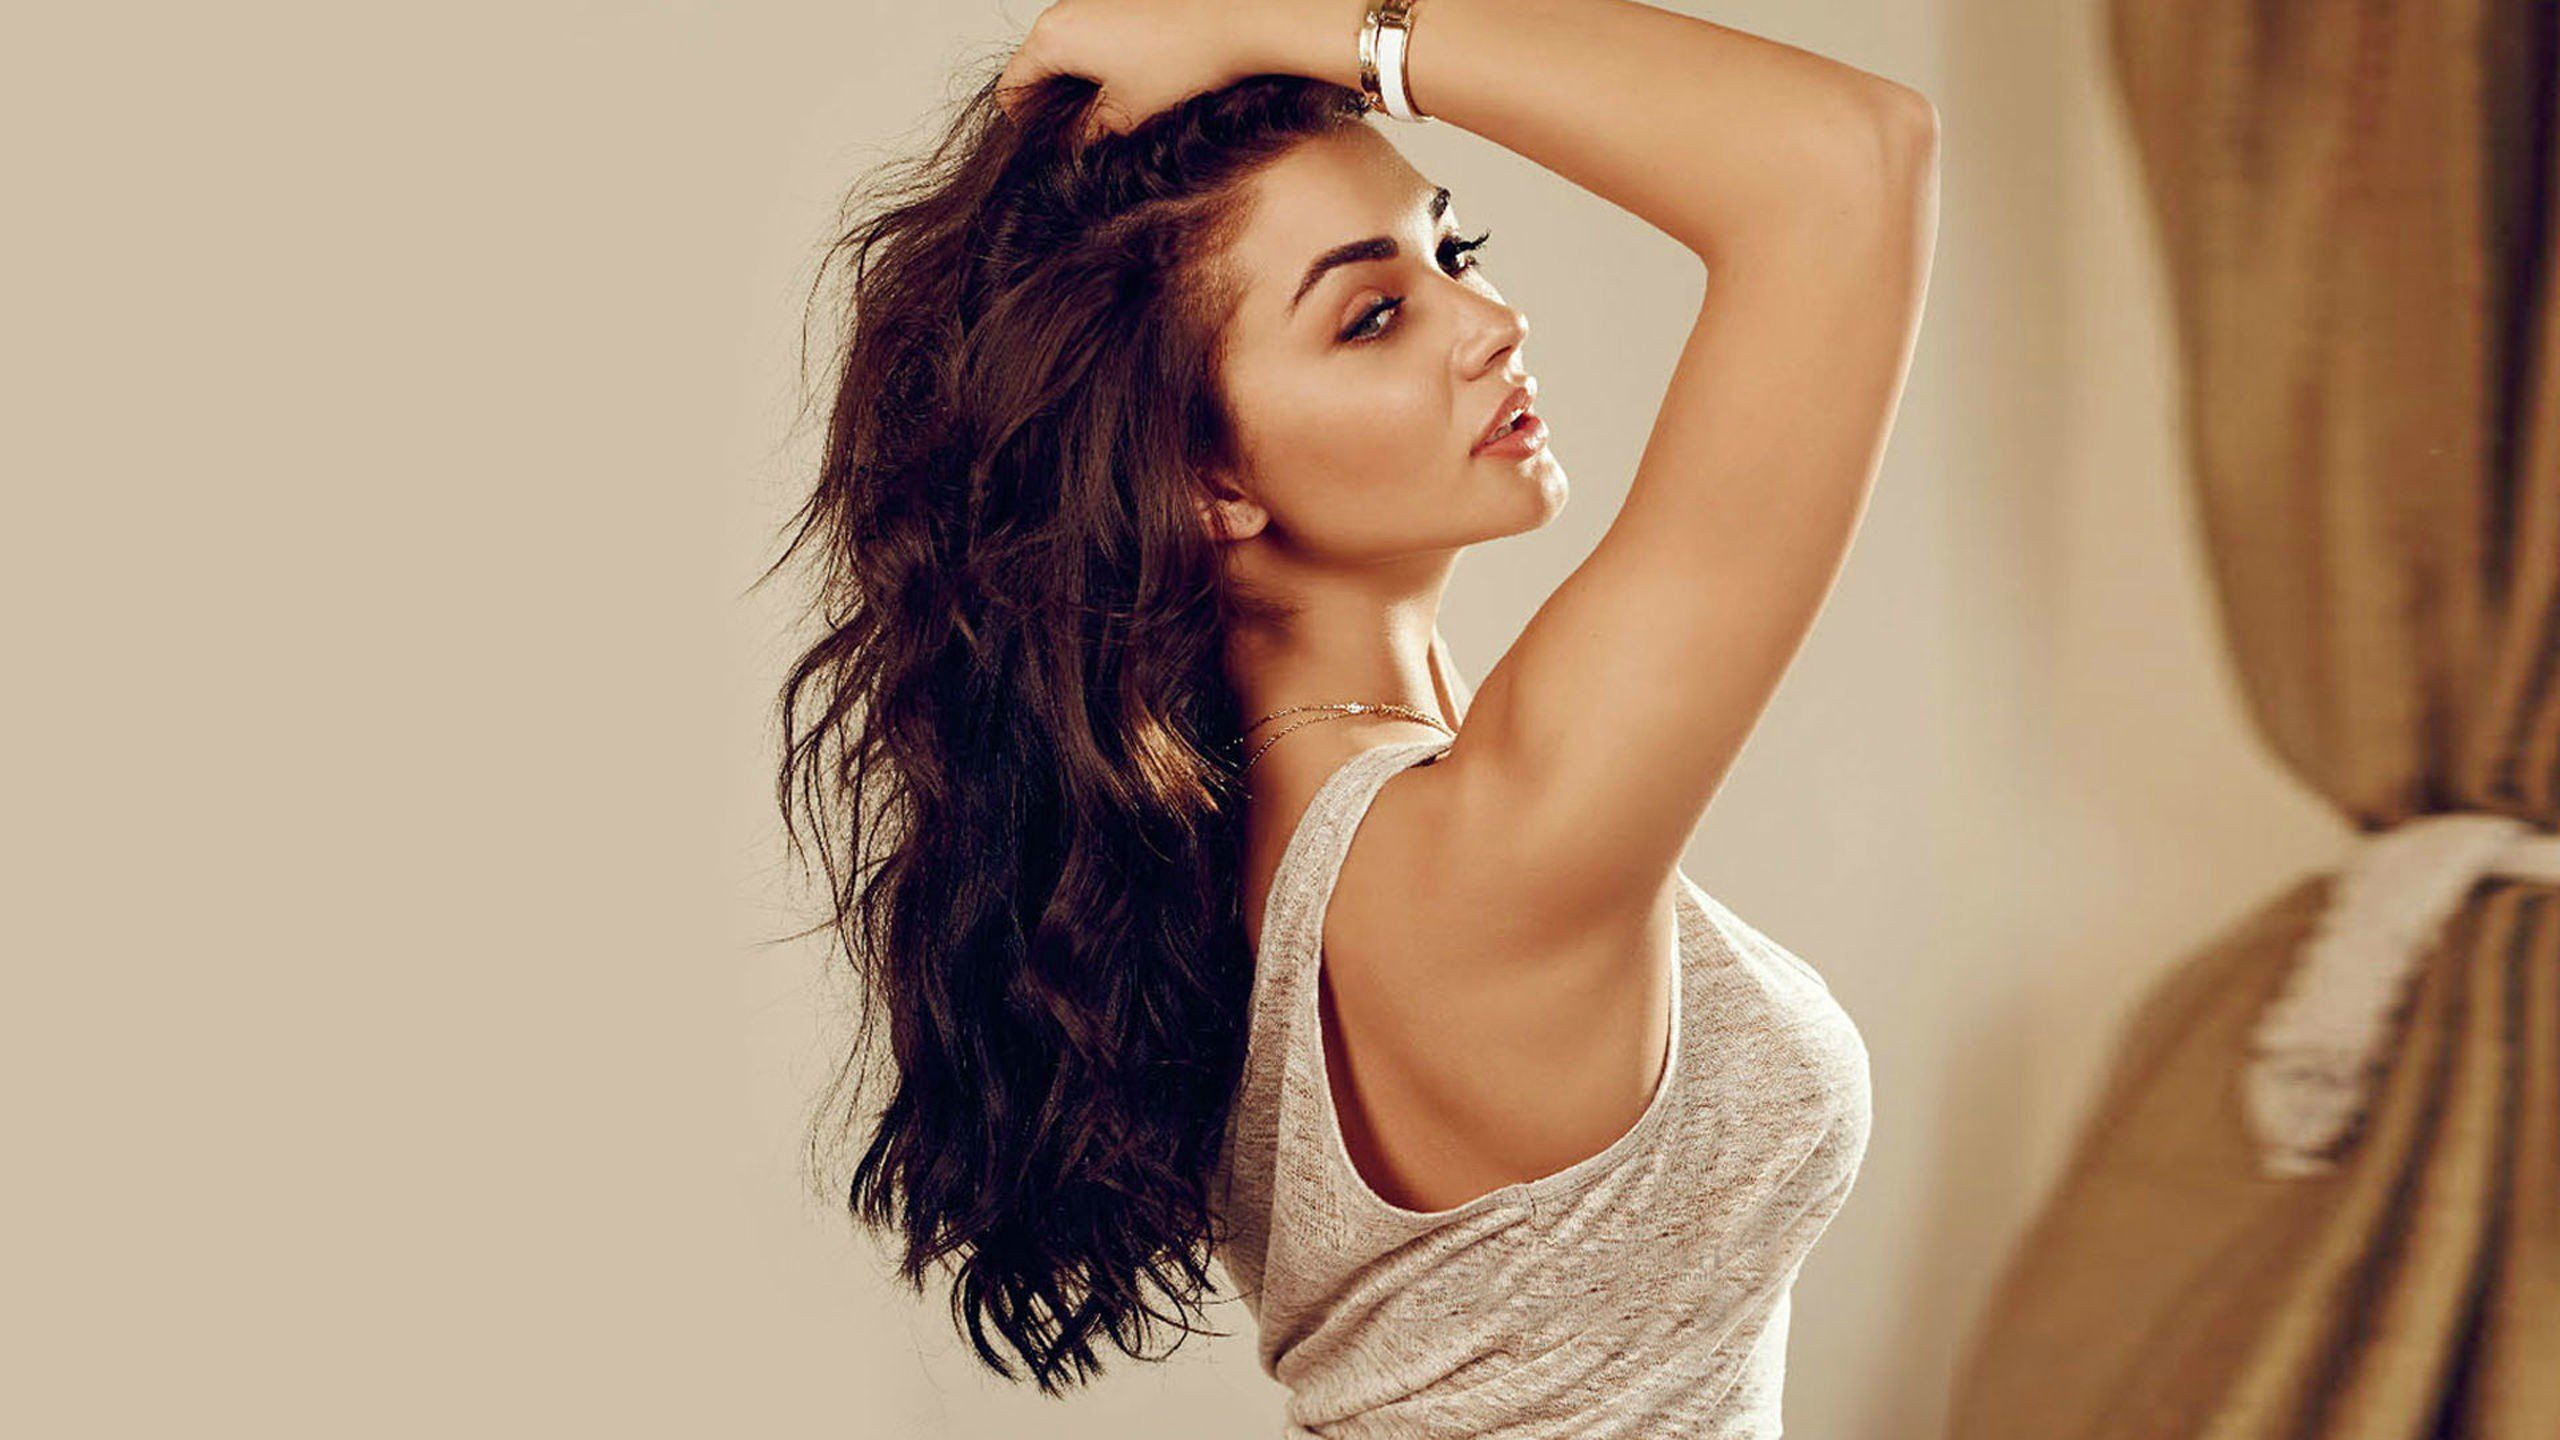 amy jackson wallpapers hot images hd latest photos mazale | amy